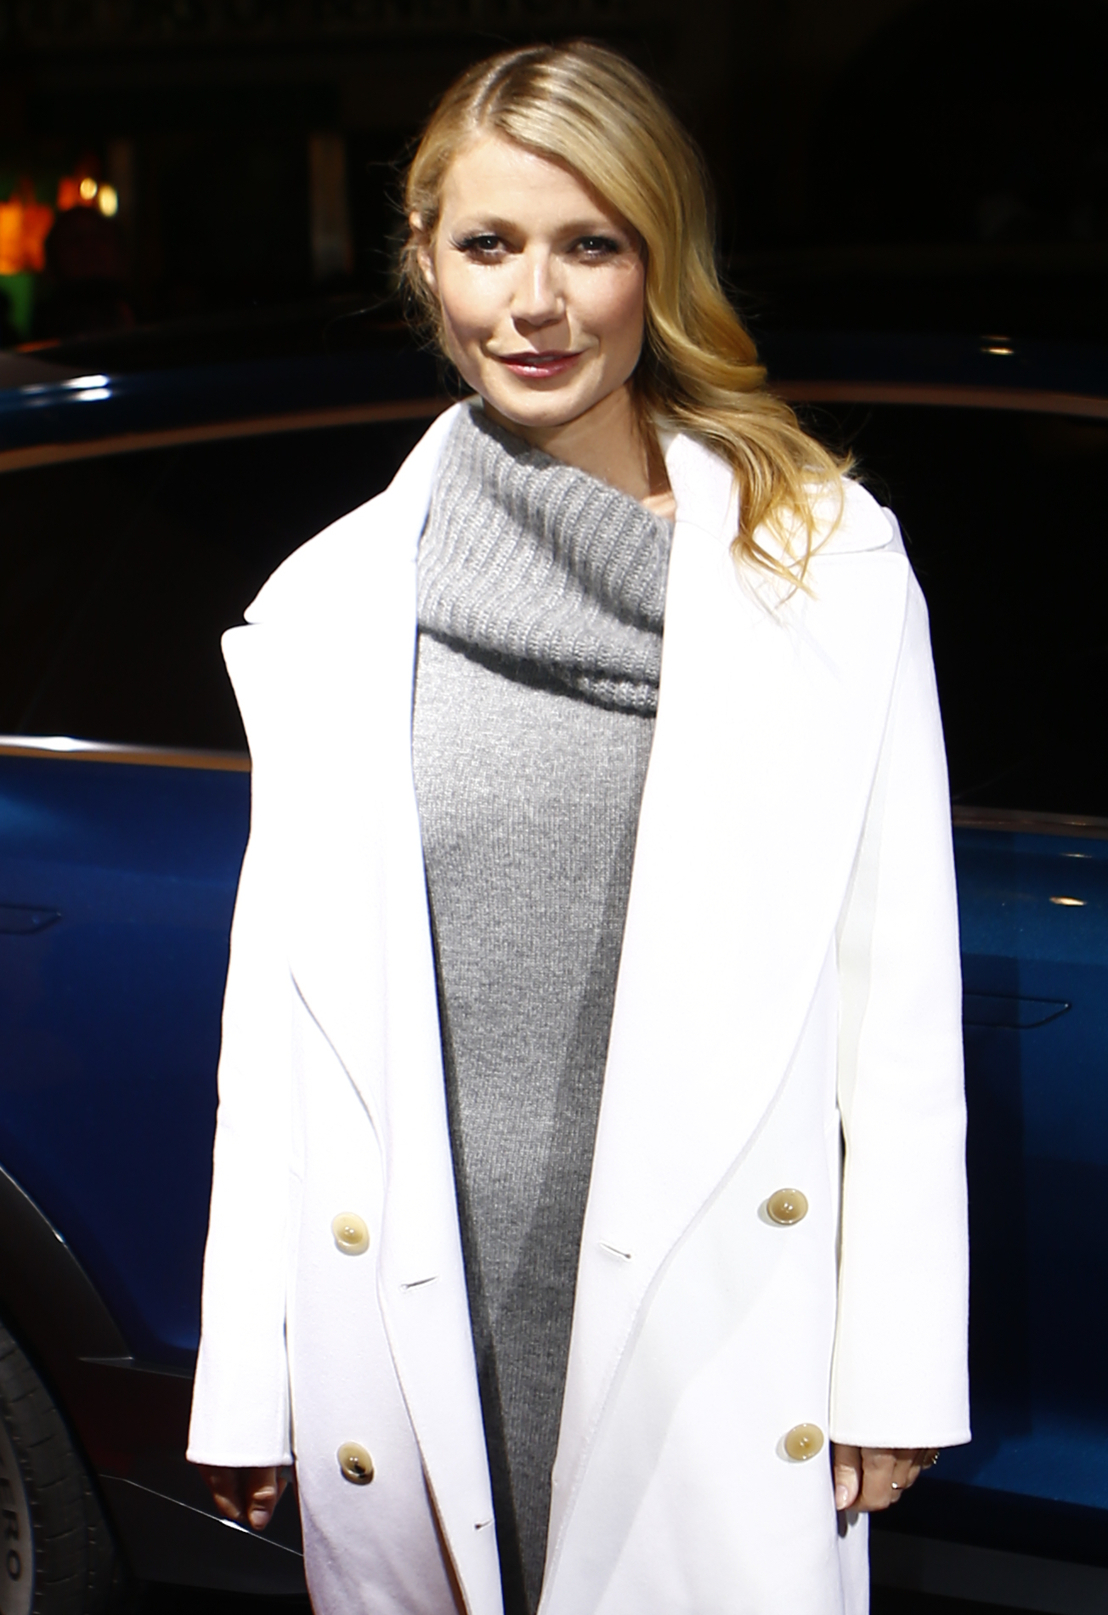 Gwyneth Paltrow - Audi Night during the FIS Alpine Ski World Cup Men's in Kitzbuehel